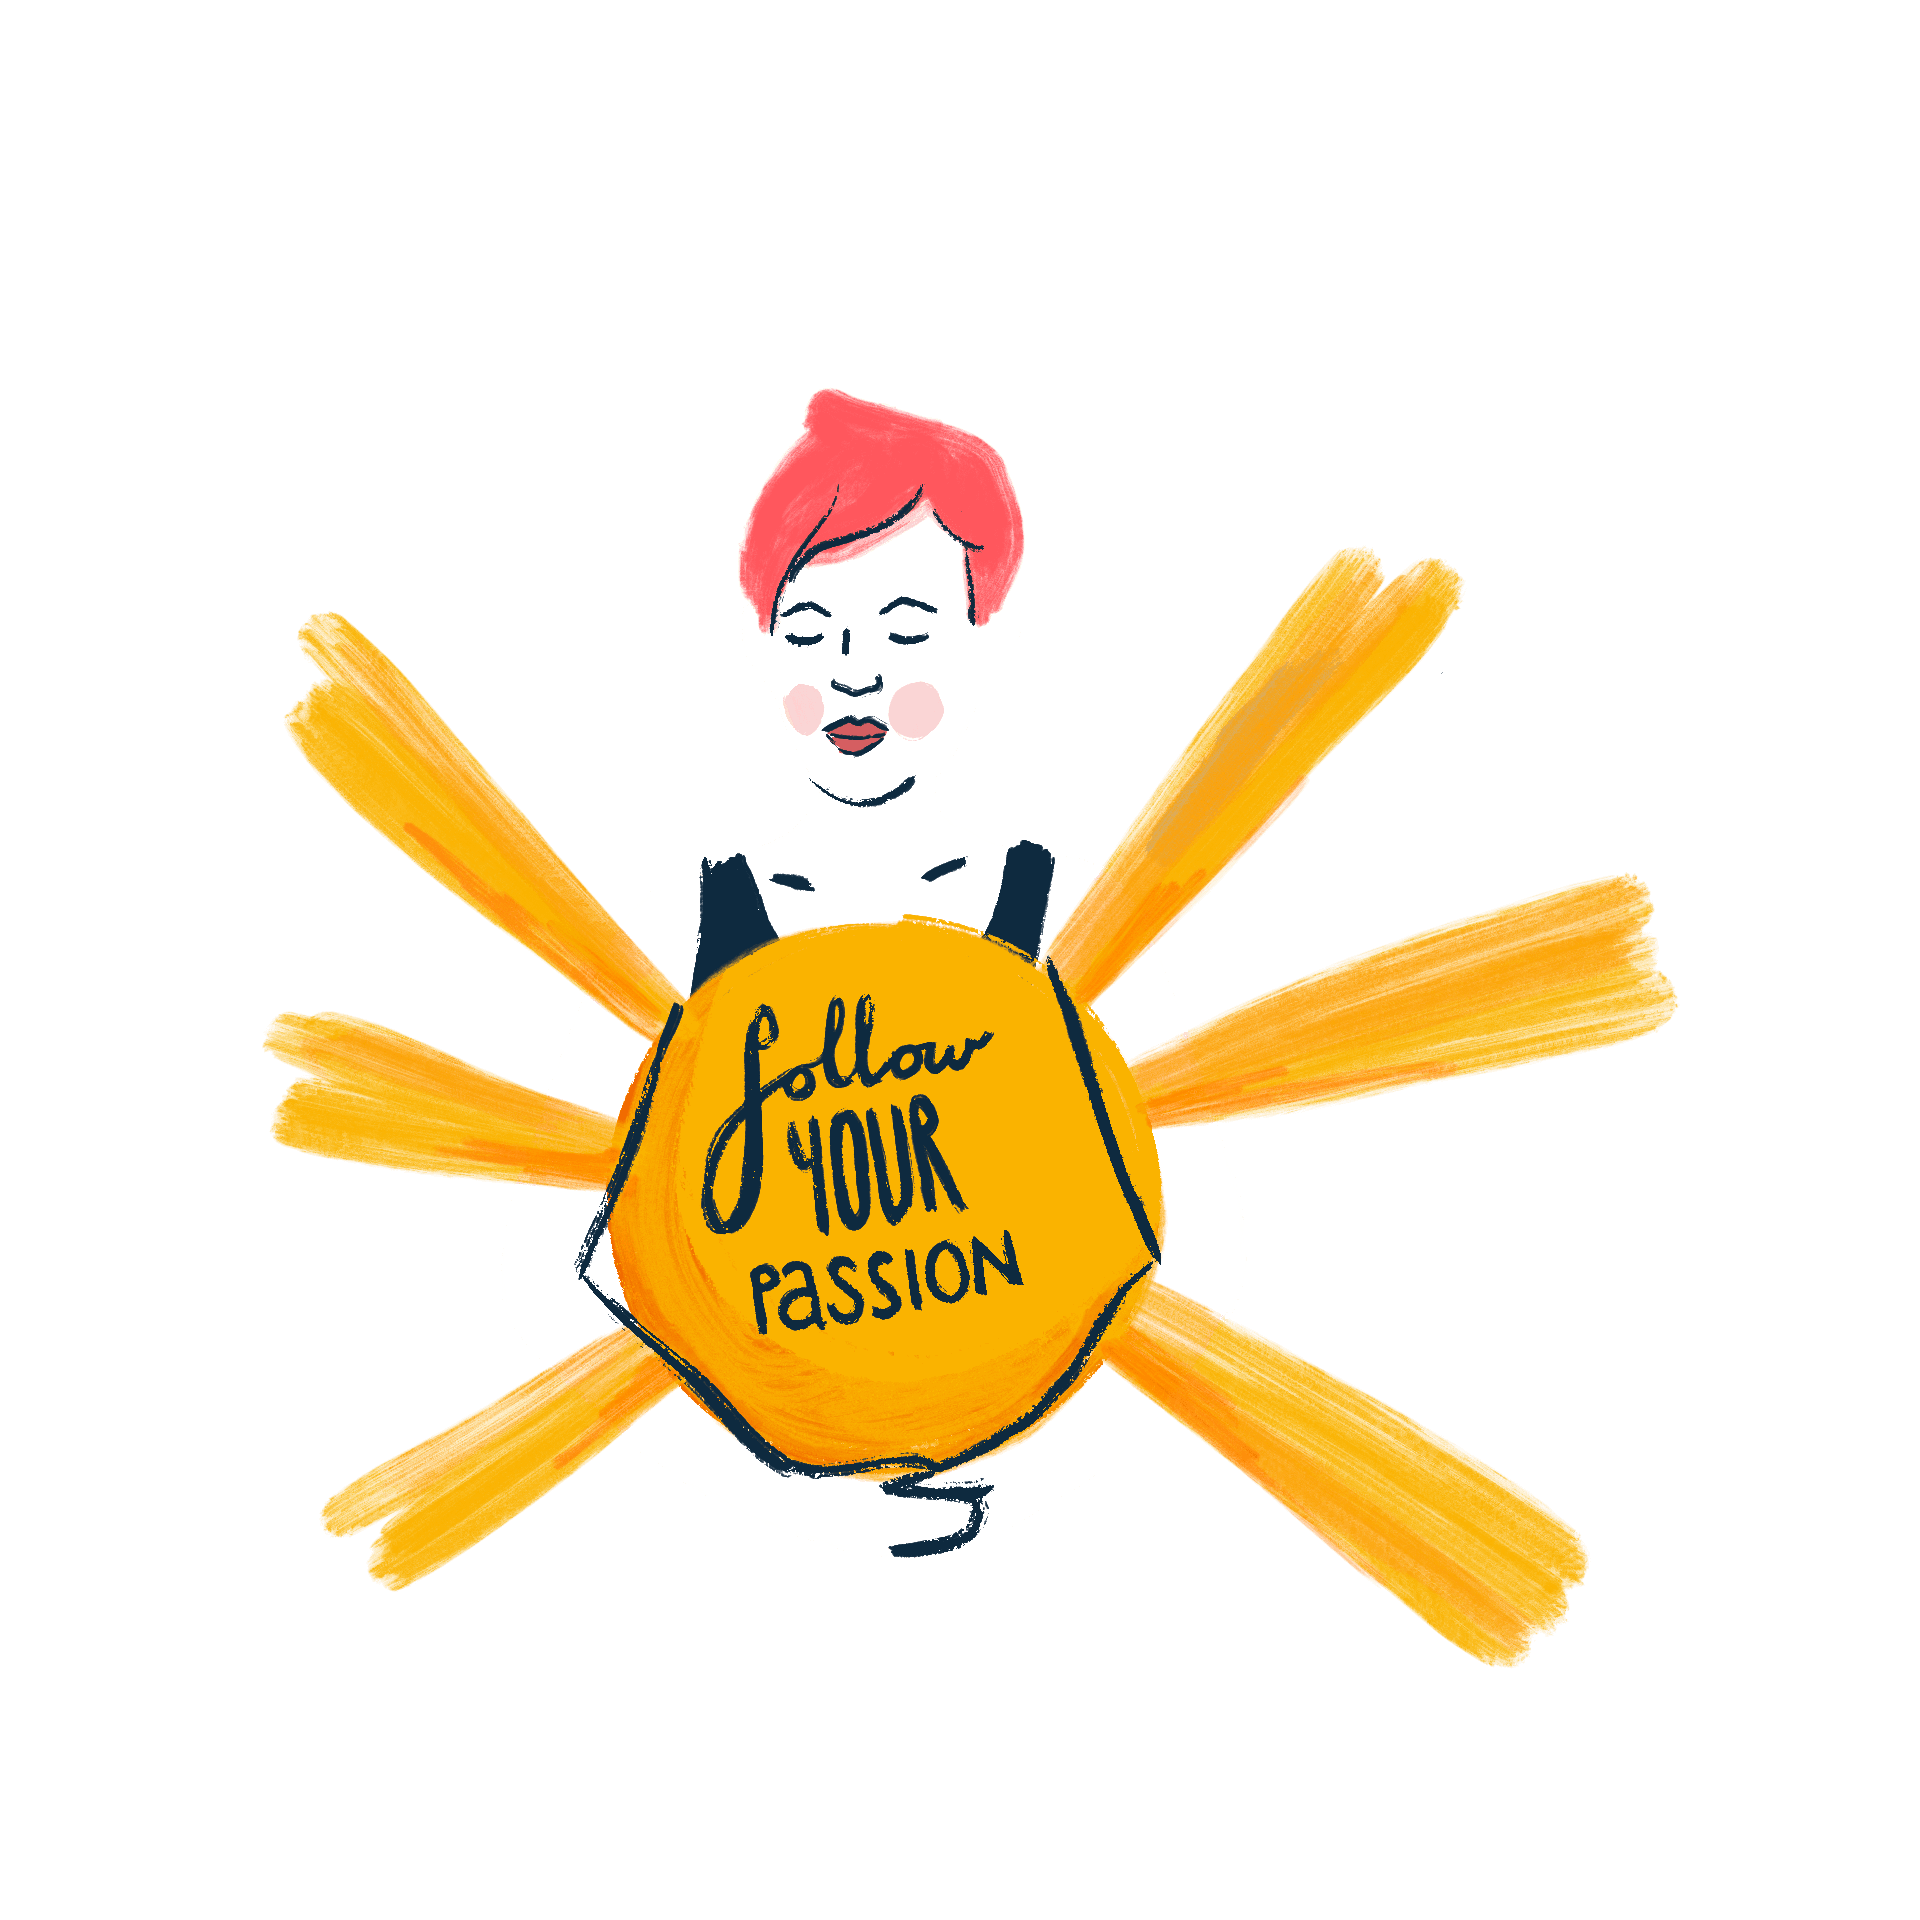 Woman holding a sun that says follow your passion